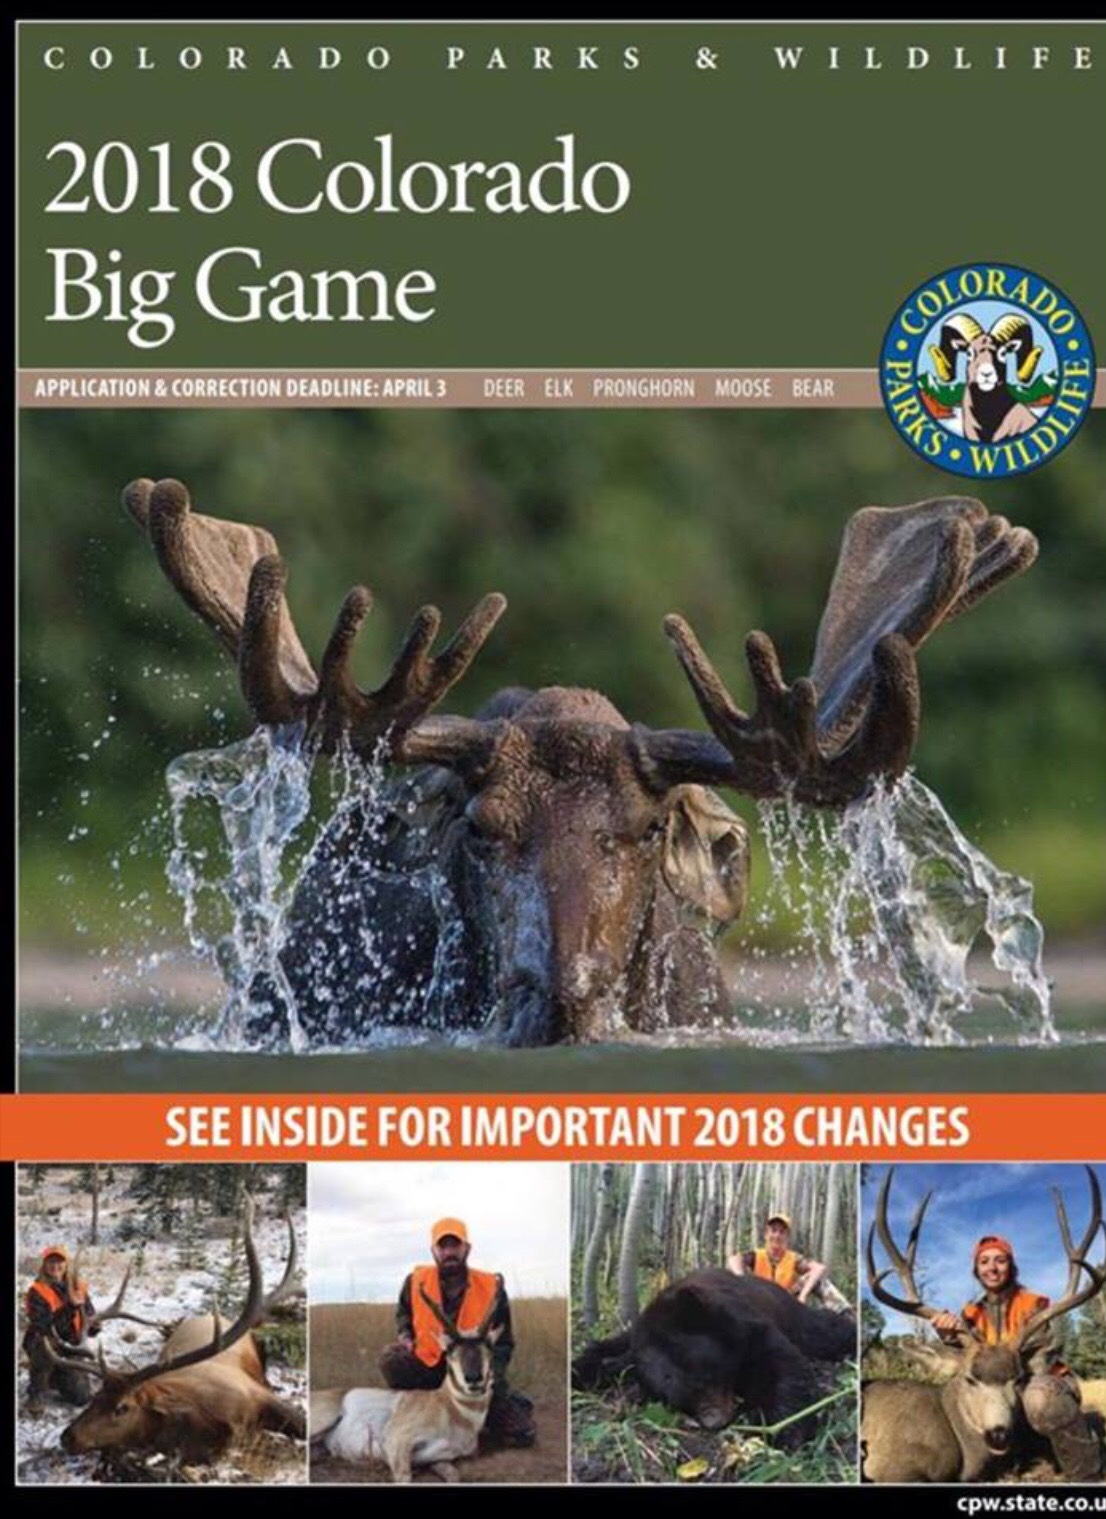 March 3: Pheasants Forever – Stack Optical – 2018 Big Game Draw with Colorado Parks & Wildlife